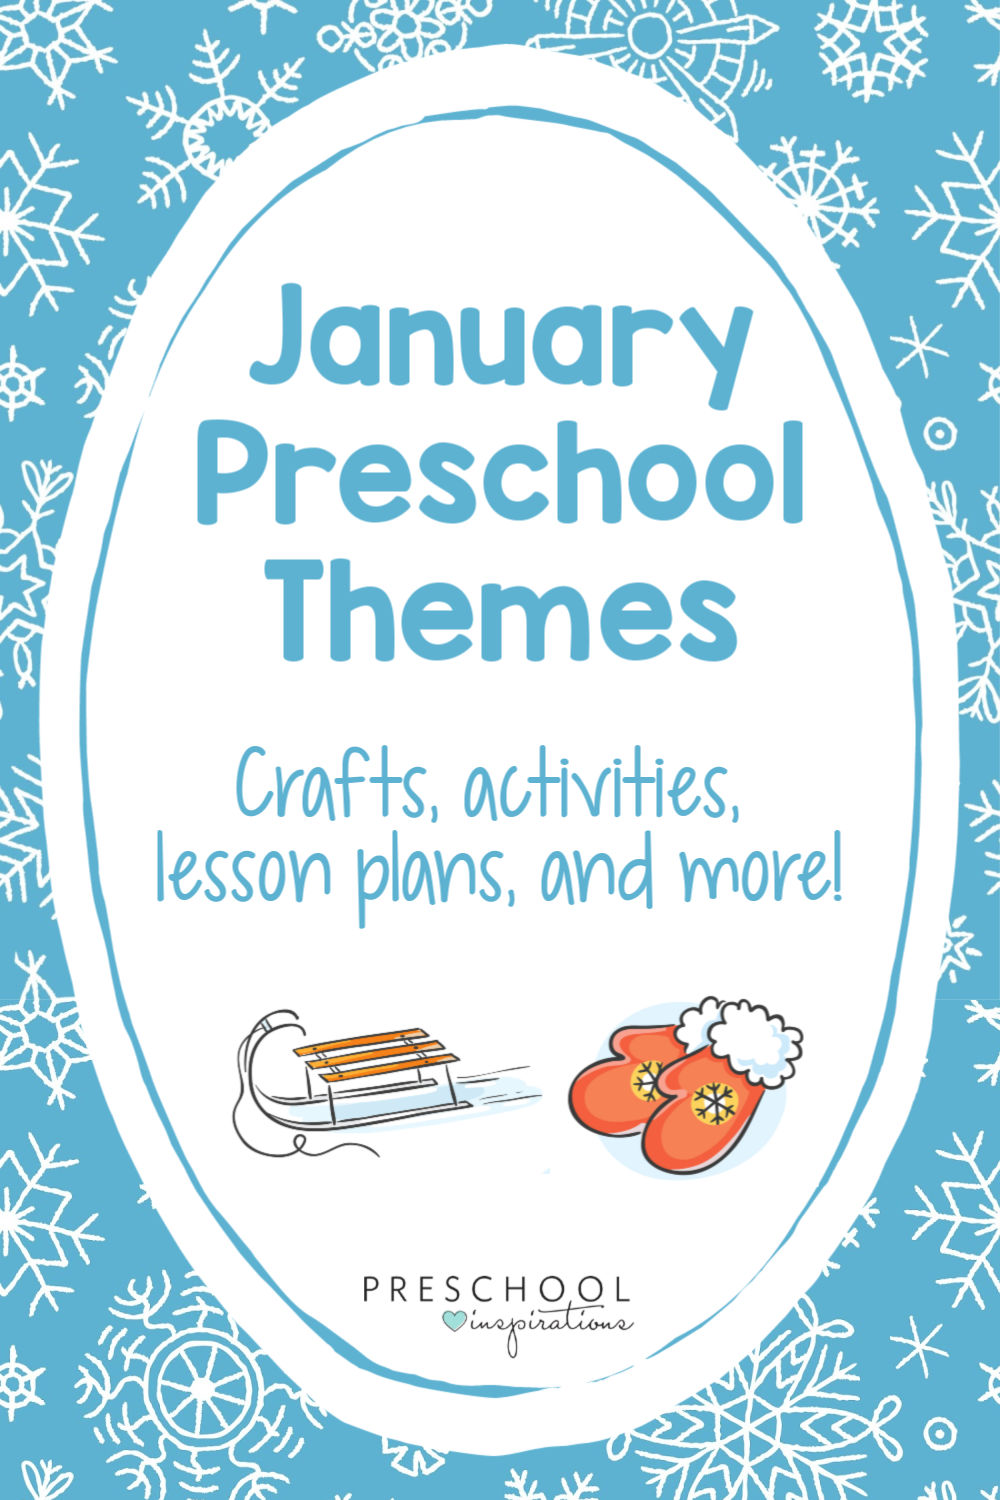 a clip art sled and winter mittens on a blue and white snowy background with the text 'January preschool themes: crafts, activities, lesson plans, and more!'